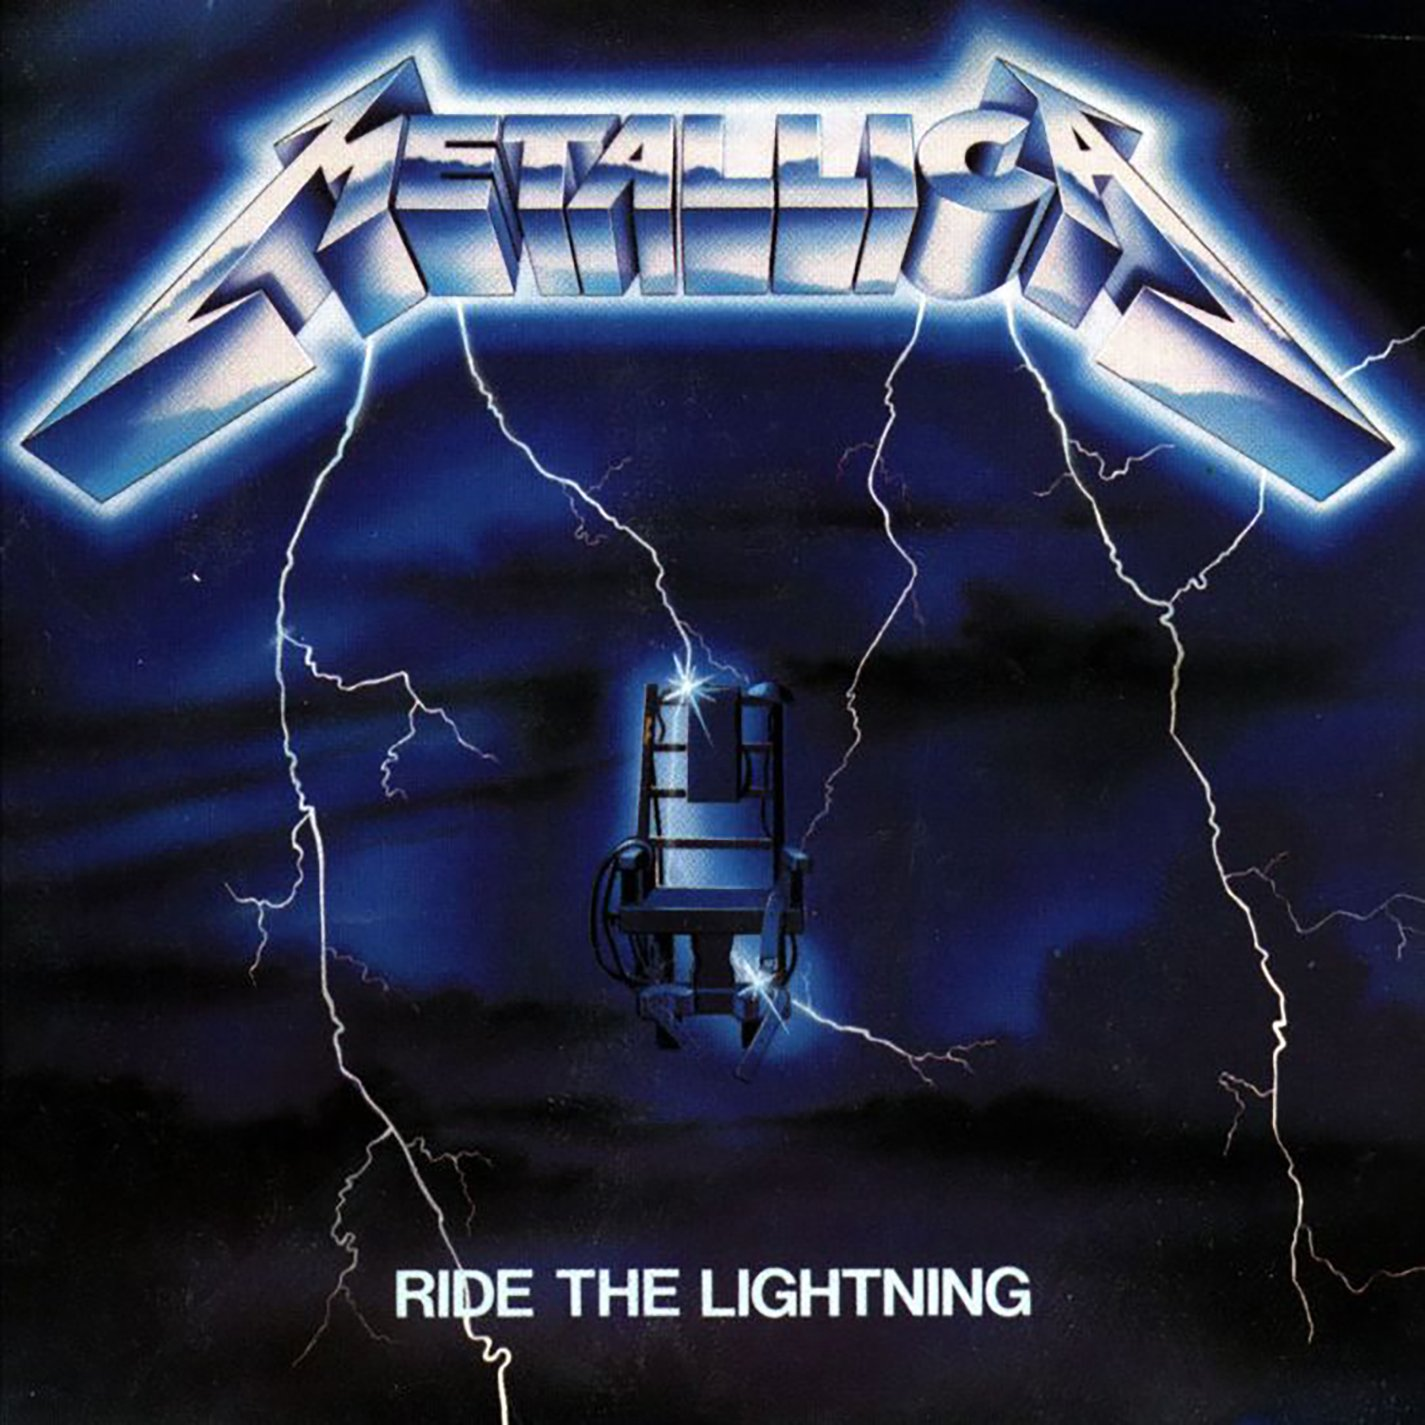 Ride The Lightning (Deluxe Boxset) (4LP/6CD/1DVD w/book, mini book and poster set) by CD